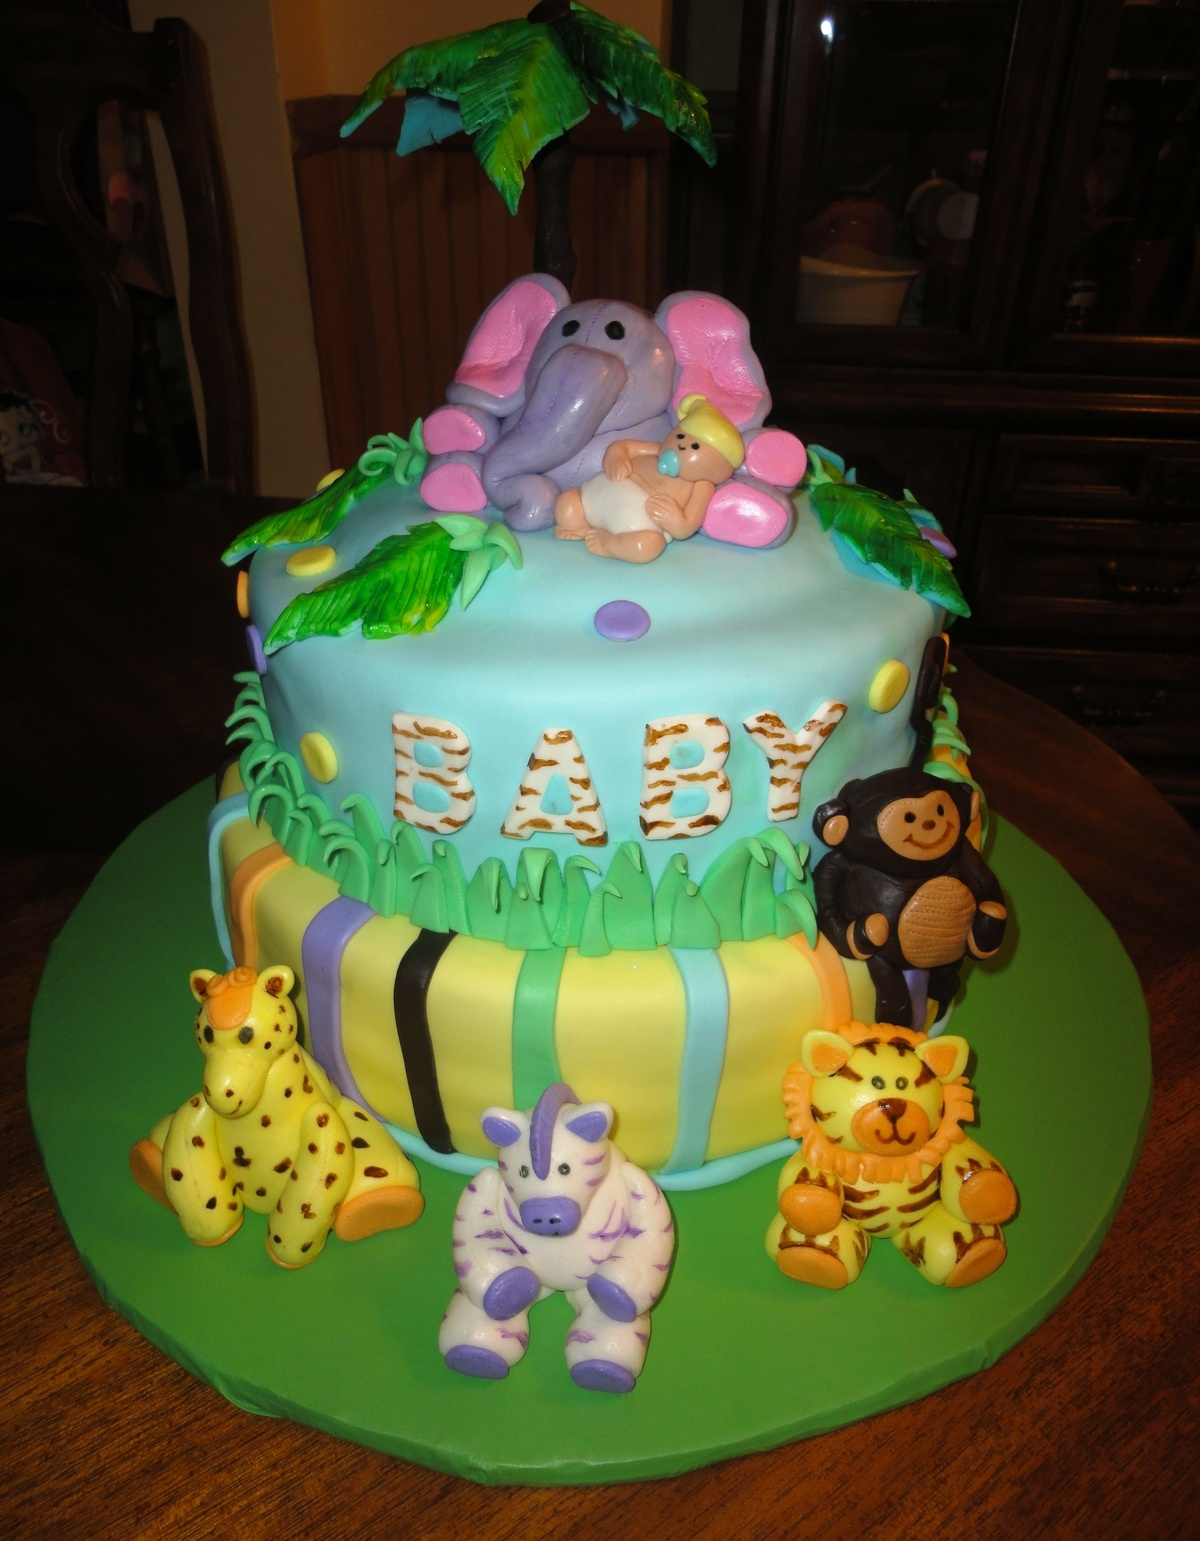 Labo Cake Design Toulouse : Labor, Cake ideas and Baby shower cakes on Pinterest